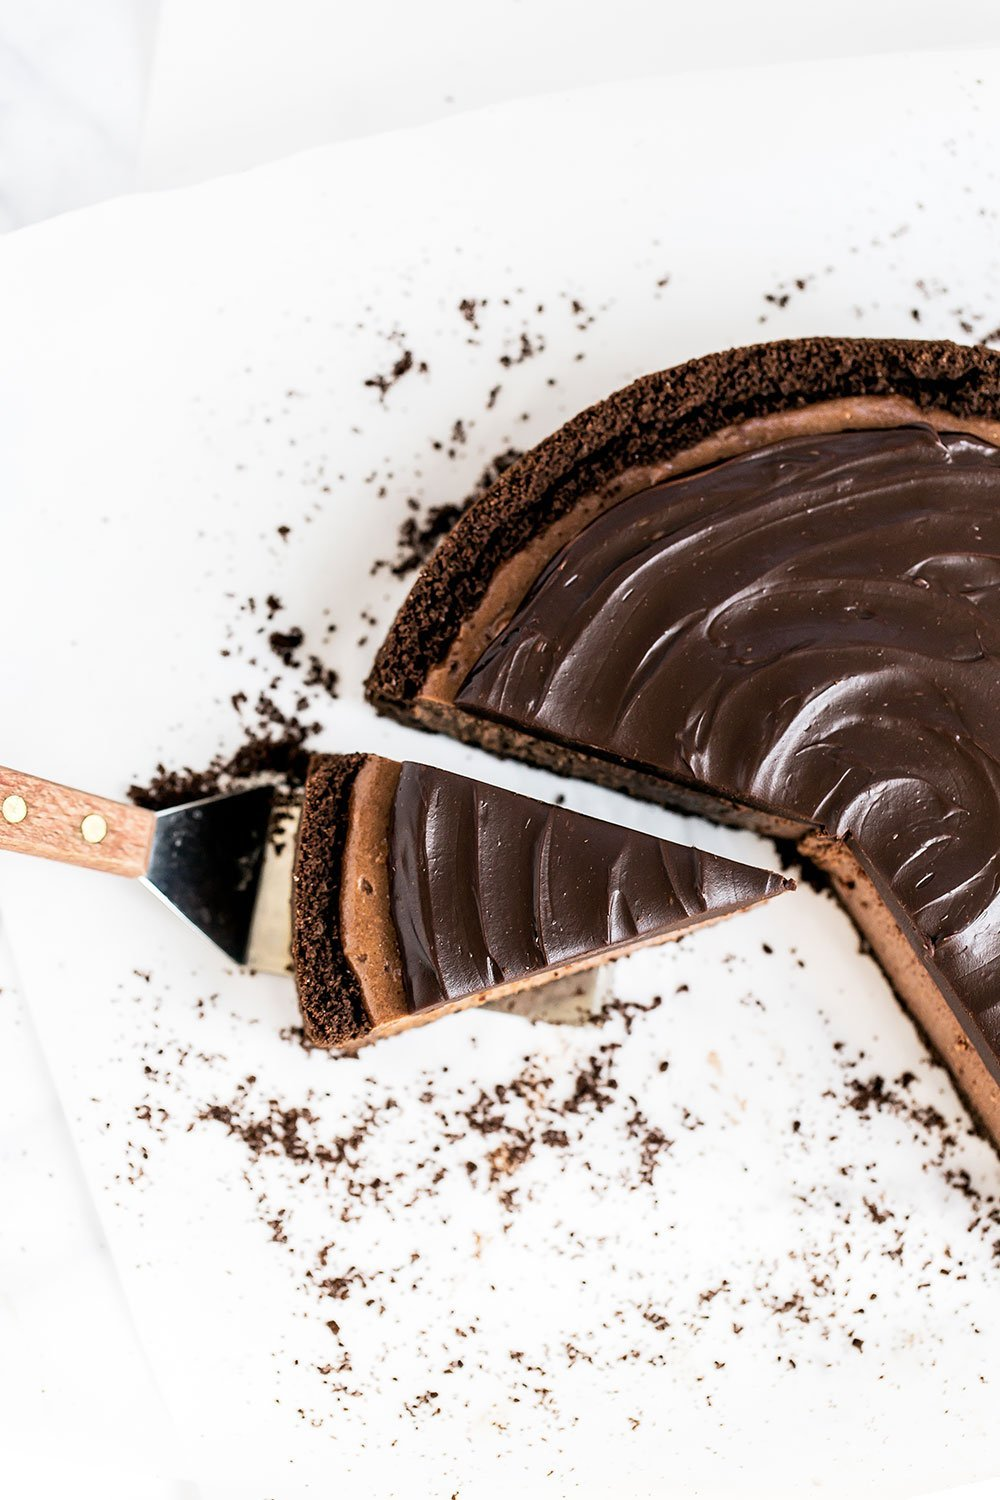 Ultimate Chocolate Cheesecake is for serious chocolate lovers only!